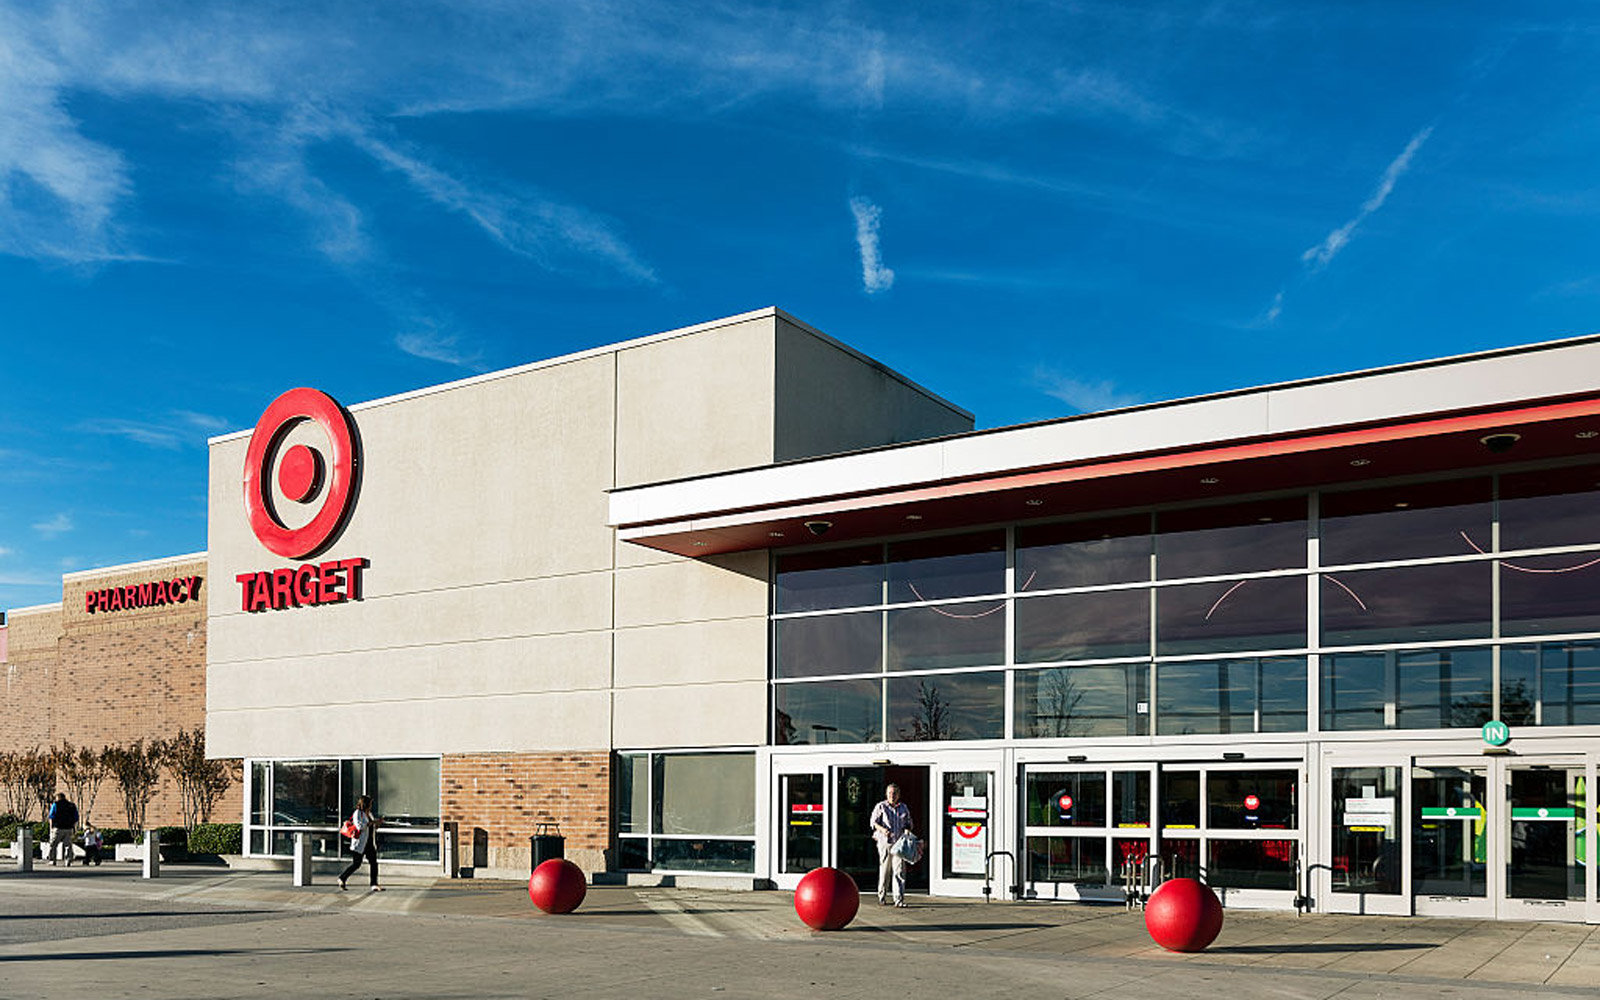 BETHLEHEM, GEORGIA, UNITED STATES - 2015/11/13: Target Store exterior. (Photo by John Greim/LightRocket via Getty Images)